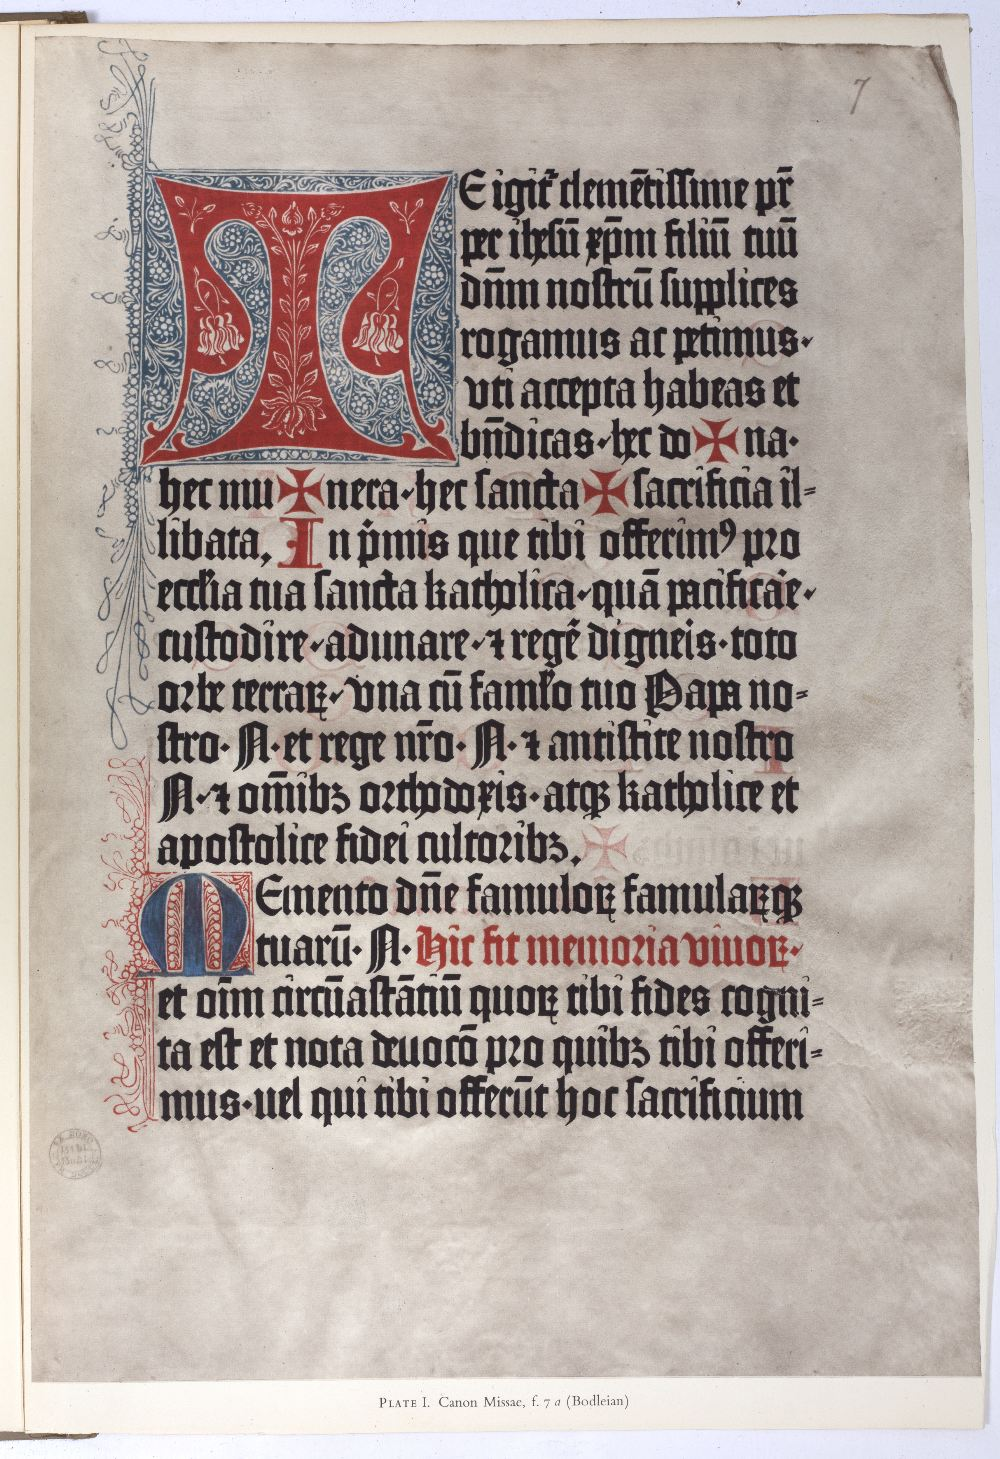 MASSON, Sir Irvine, The Mainz Psalters and Canon Missae 1457-1459. Bibliographical Society, London